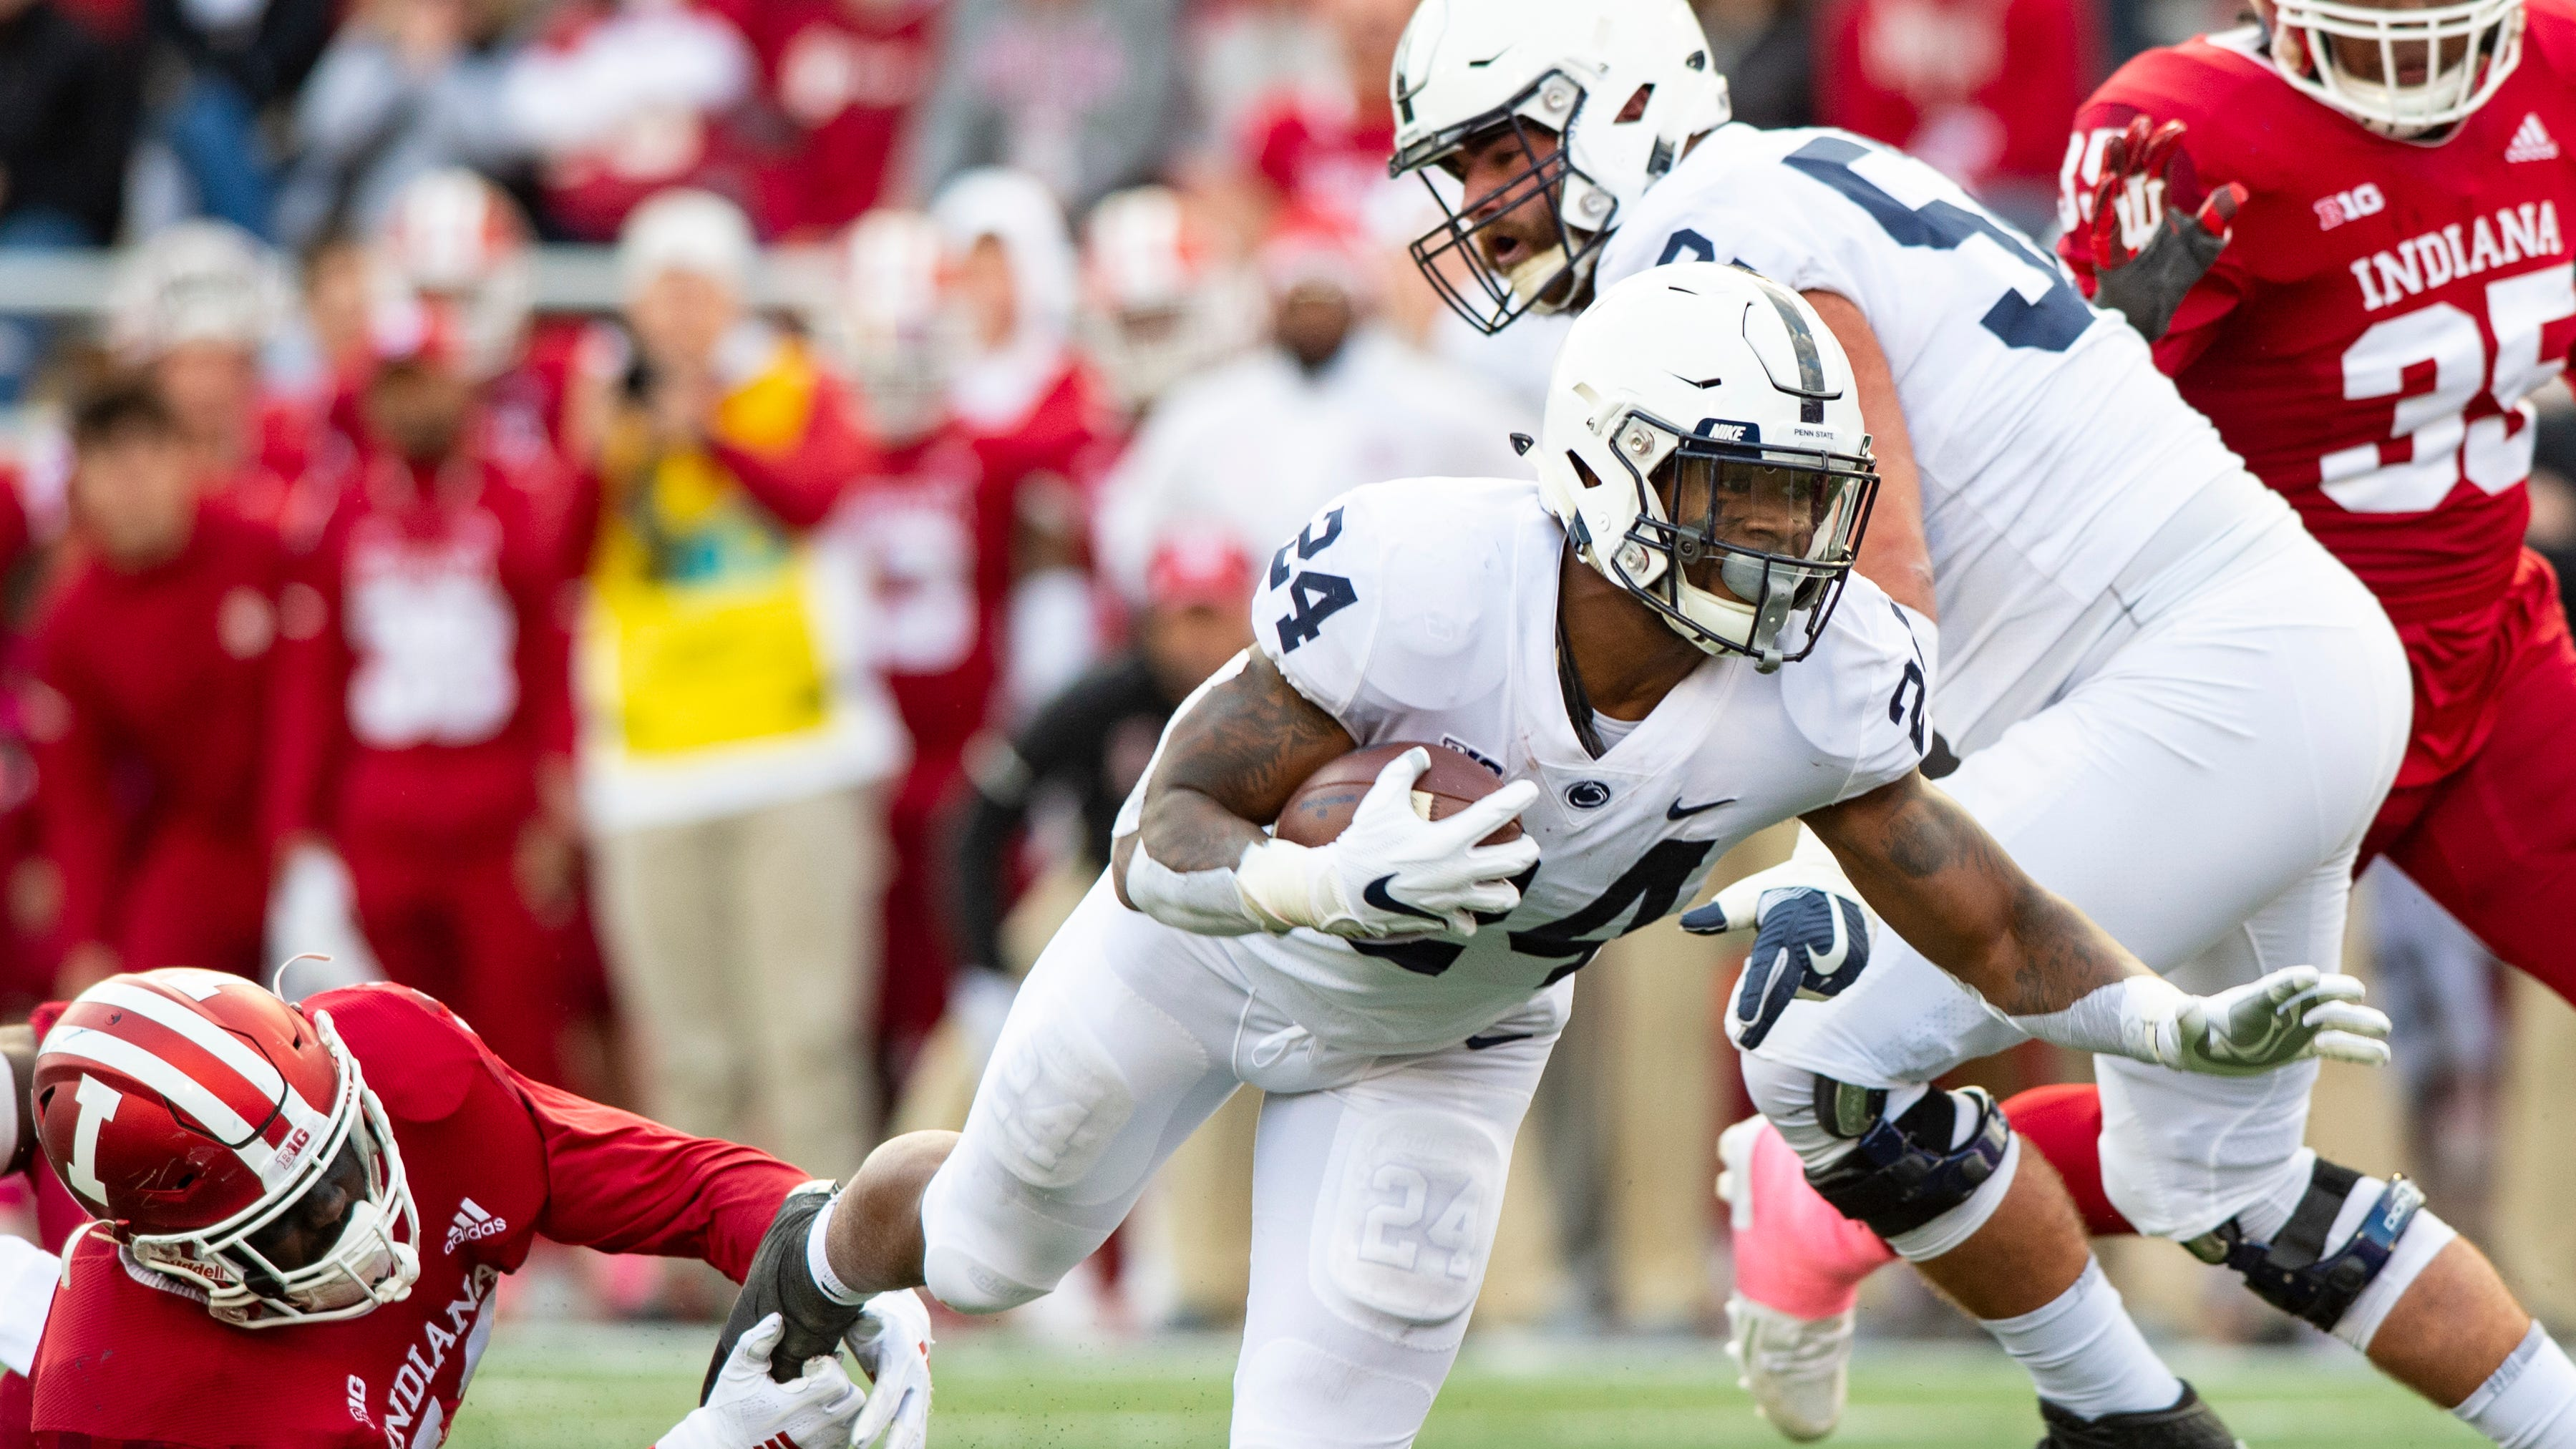 Penn State running back Miles Sanders (24) is tripped up by Indiana linebacker Dameon Willis Jr. (43) as he rushes the ball up field during the second half of an NCAA college football game Saturday, Oct. 20, 2018, in Bloomington, Ind. Penn State won 33-28.